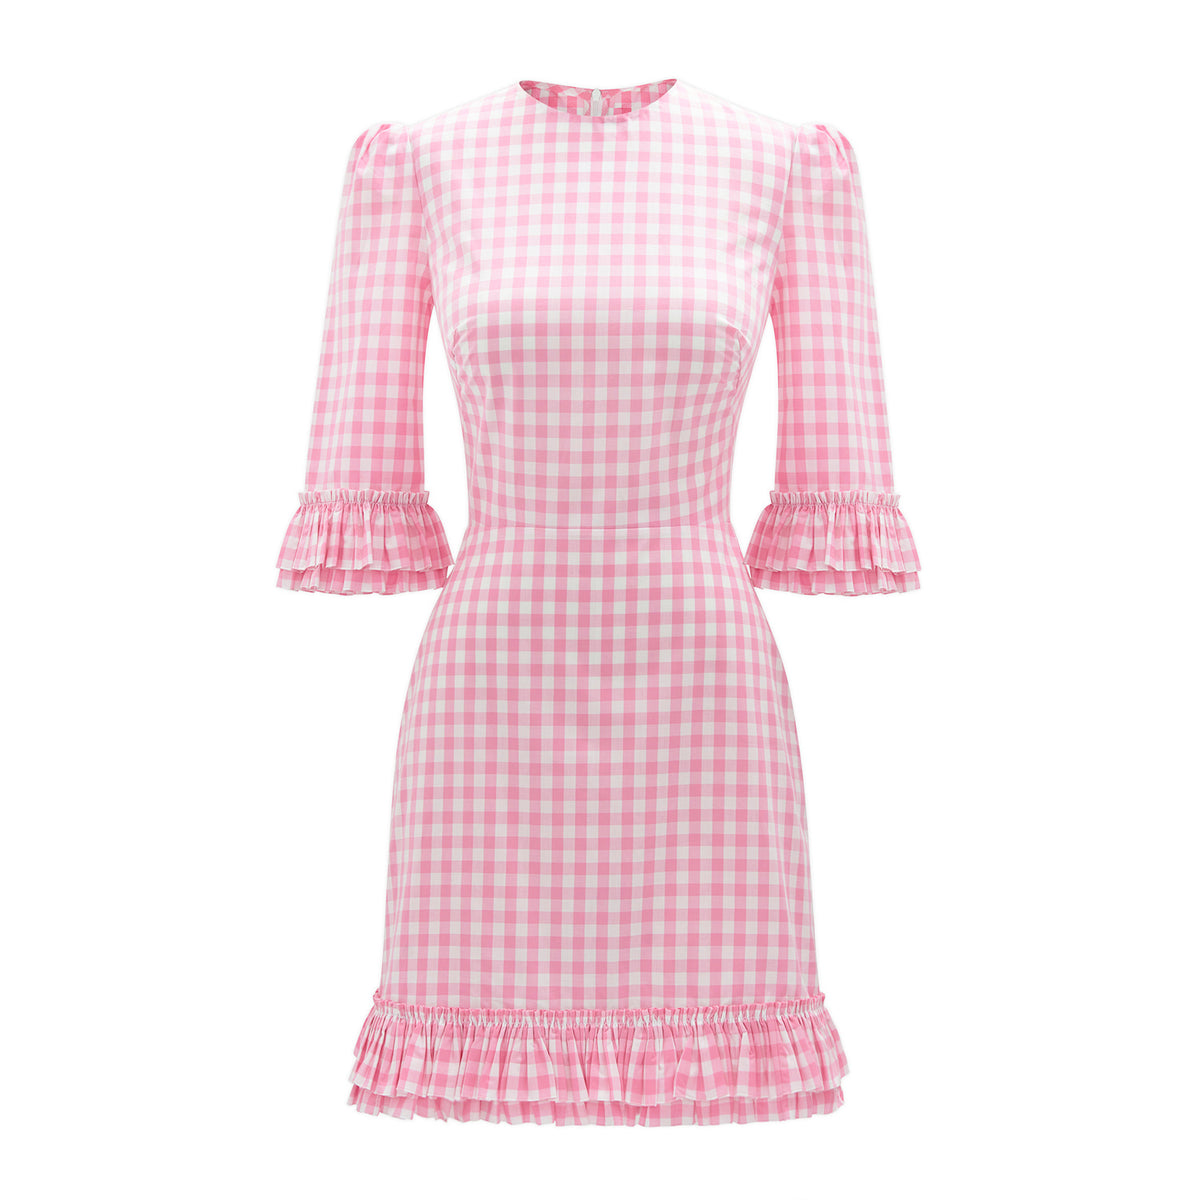 THE PINK GINGHAM MINI FESTIVAL DRESS